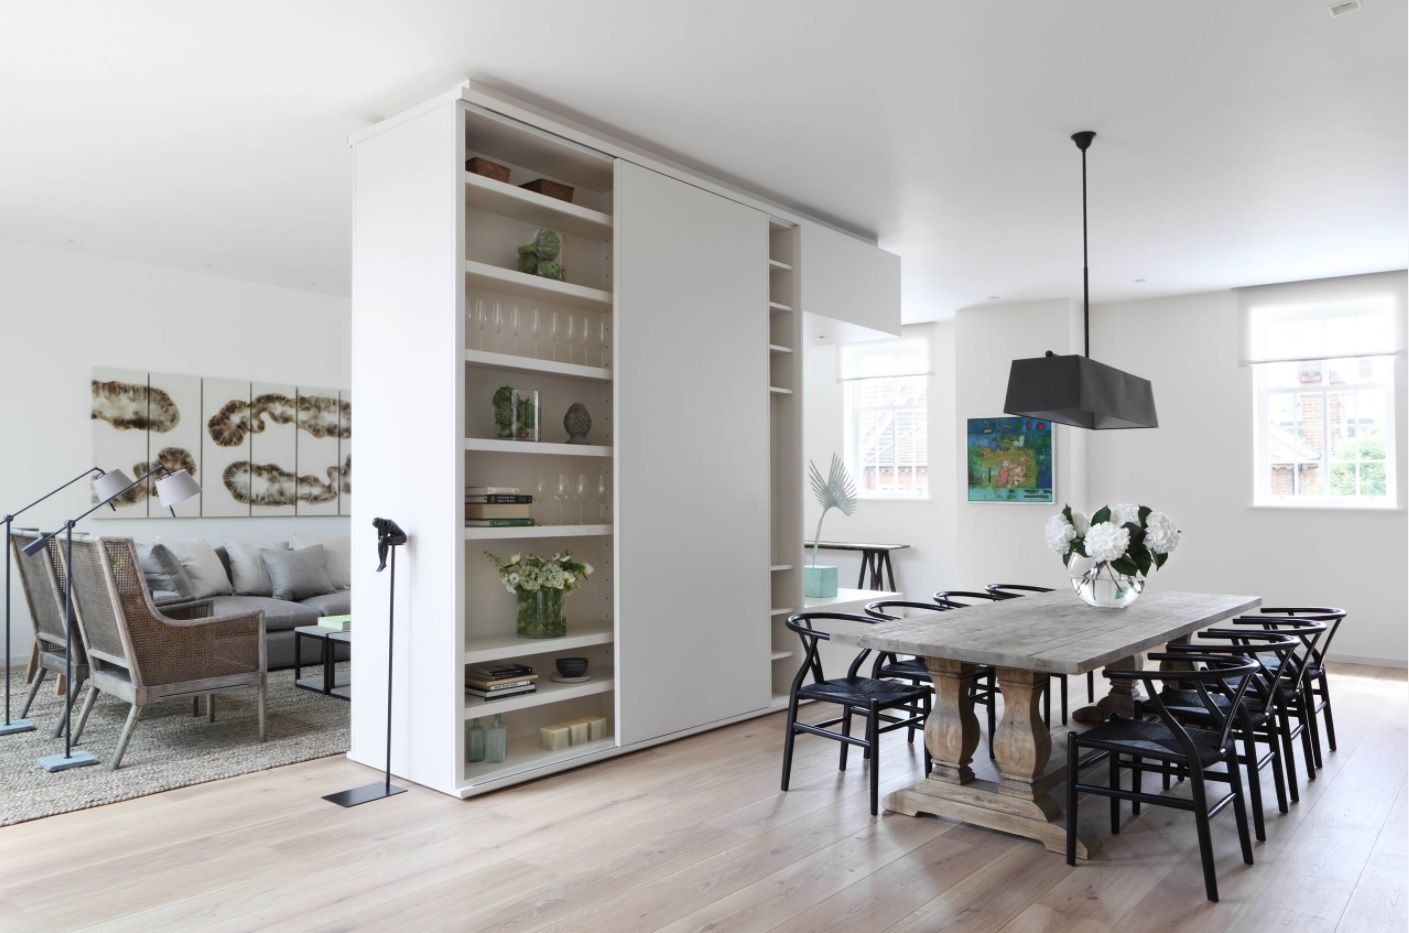 Dining Hall Furniture for Different Apartment Types. Light color theme in of the interior with dining zone seprated by shelving